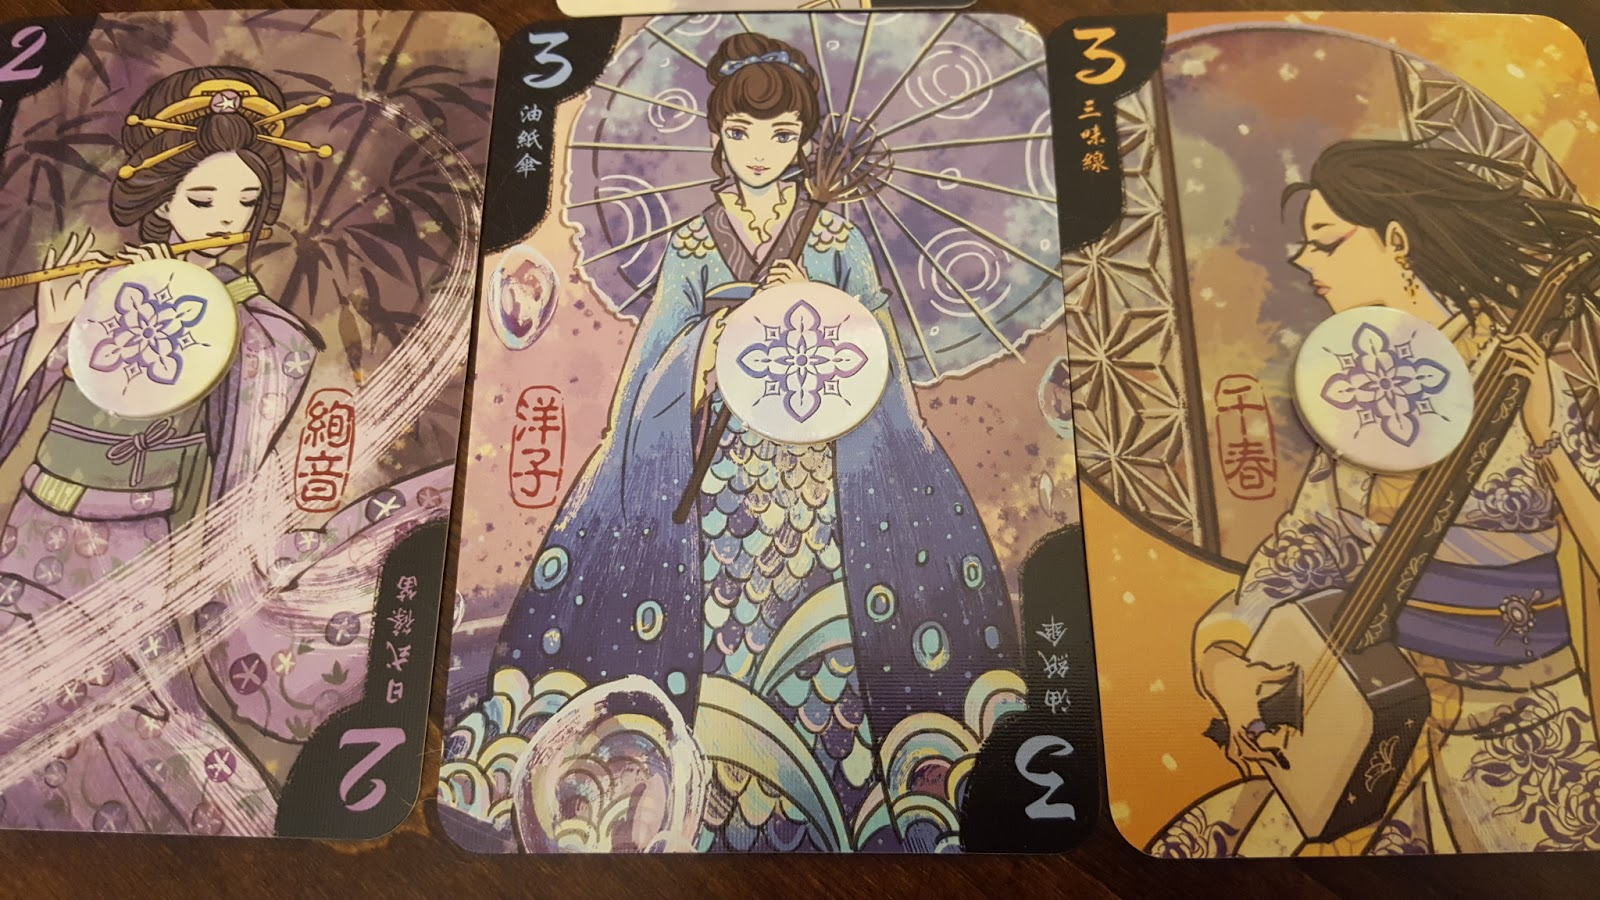 D Line Drawing Game : That's what jenni said: board game review: hanamikoji